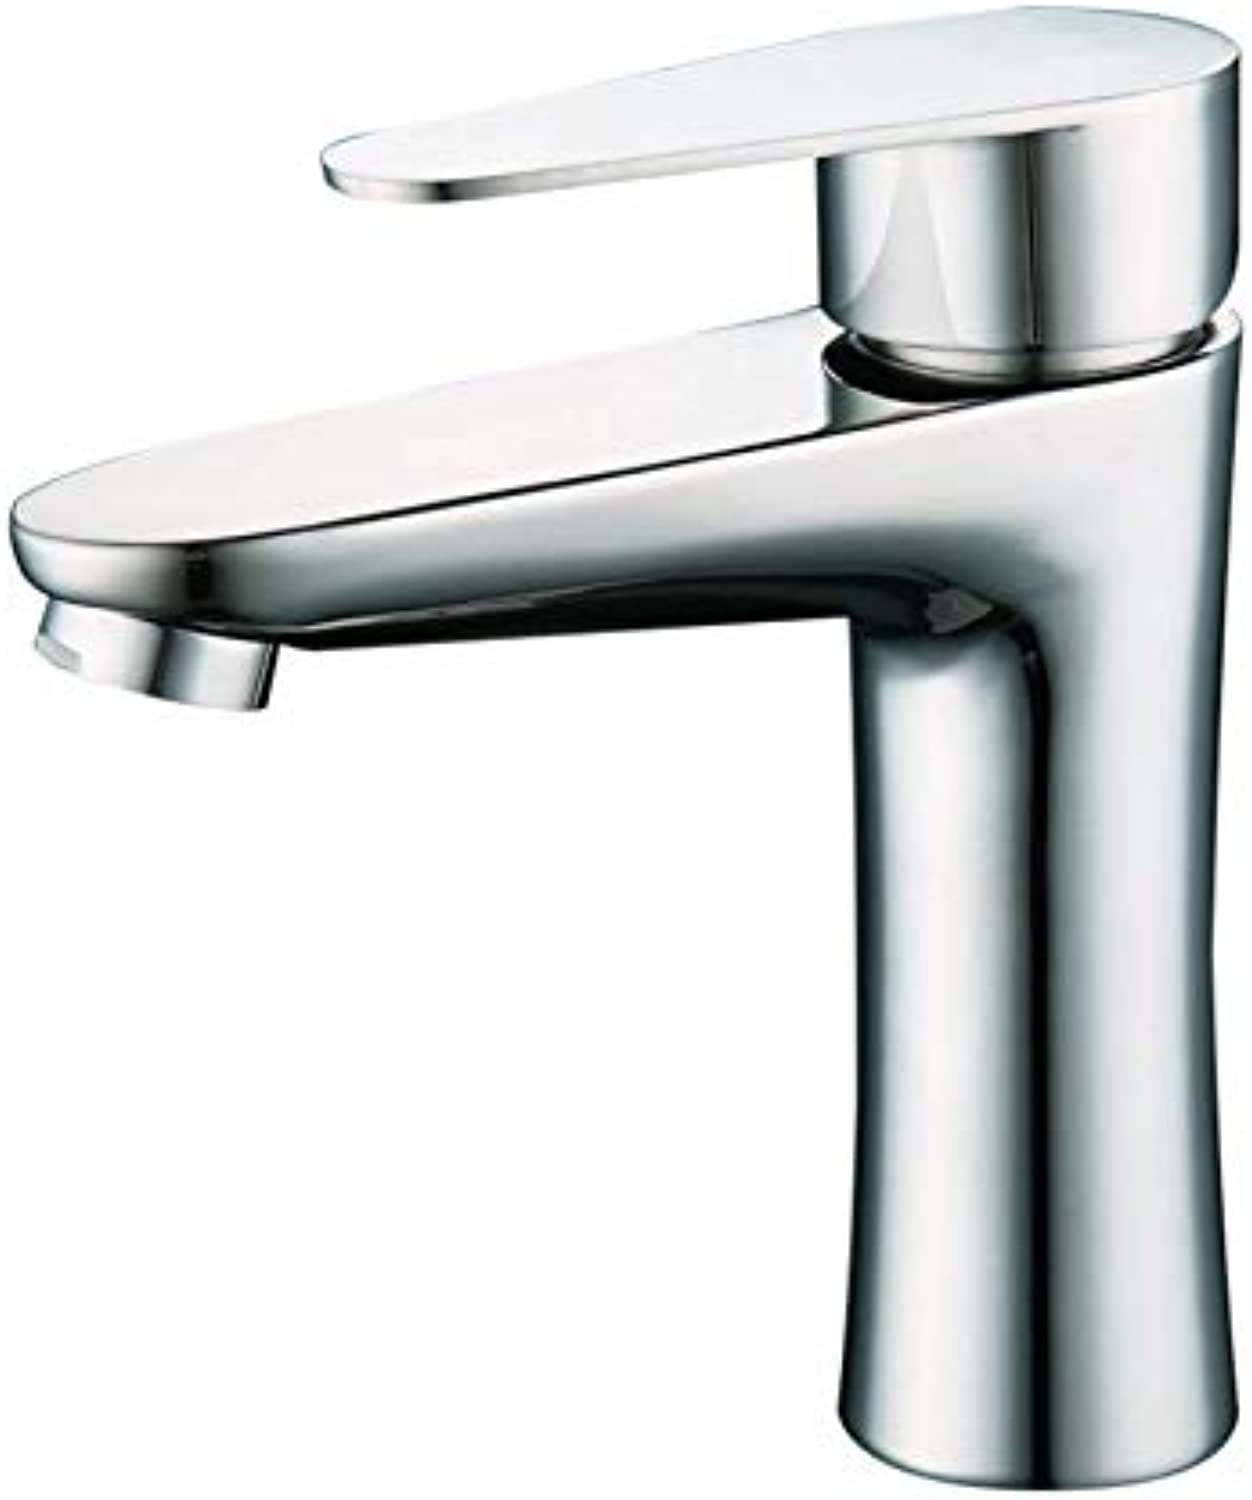 Sink Faucet Stainless Steel Washbasin Faucet Washbasin Faucet Wash Basin Hot and Cold Water Faucet